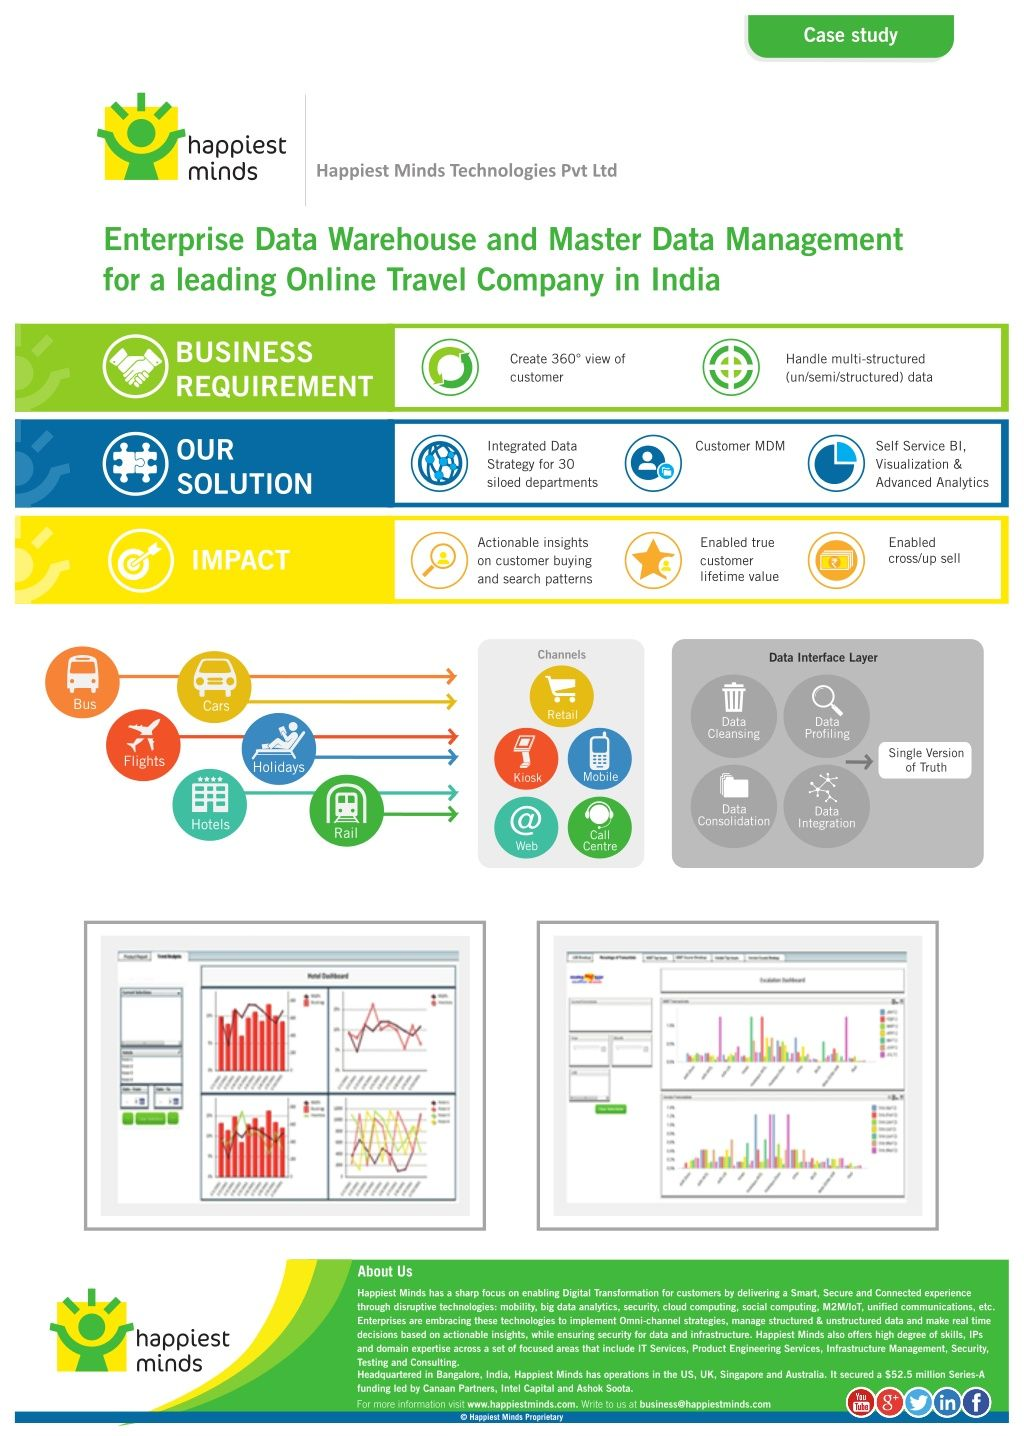 Enterprise data warehouse master data management happiest minds enterprise data warehouse master data management happiest minds technologies by happiest minds technologies via slideshare accmission Choice Image